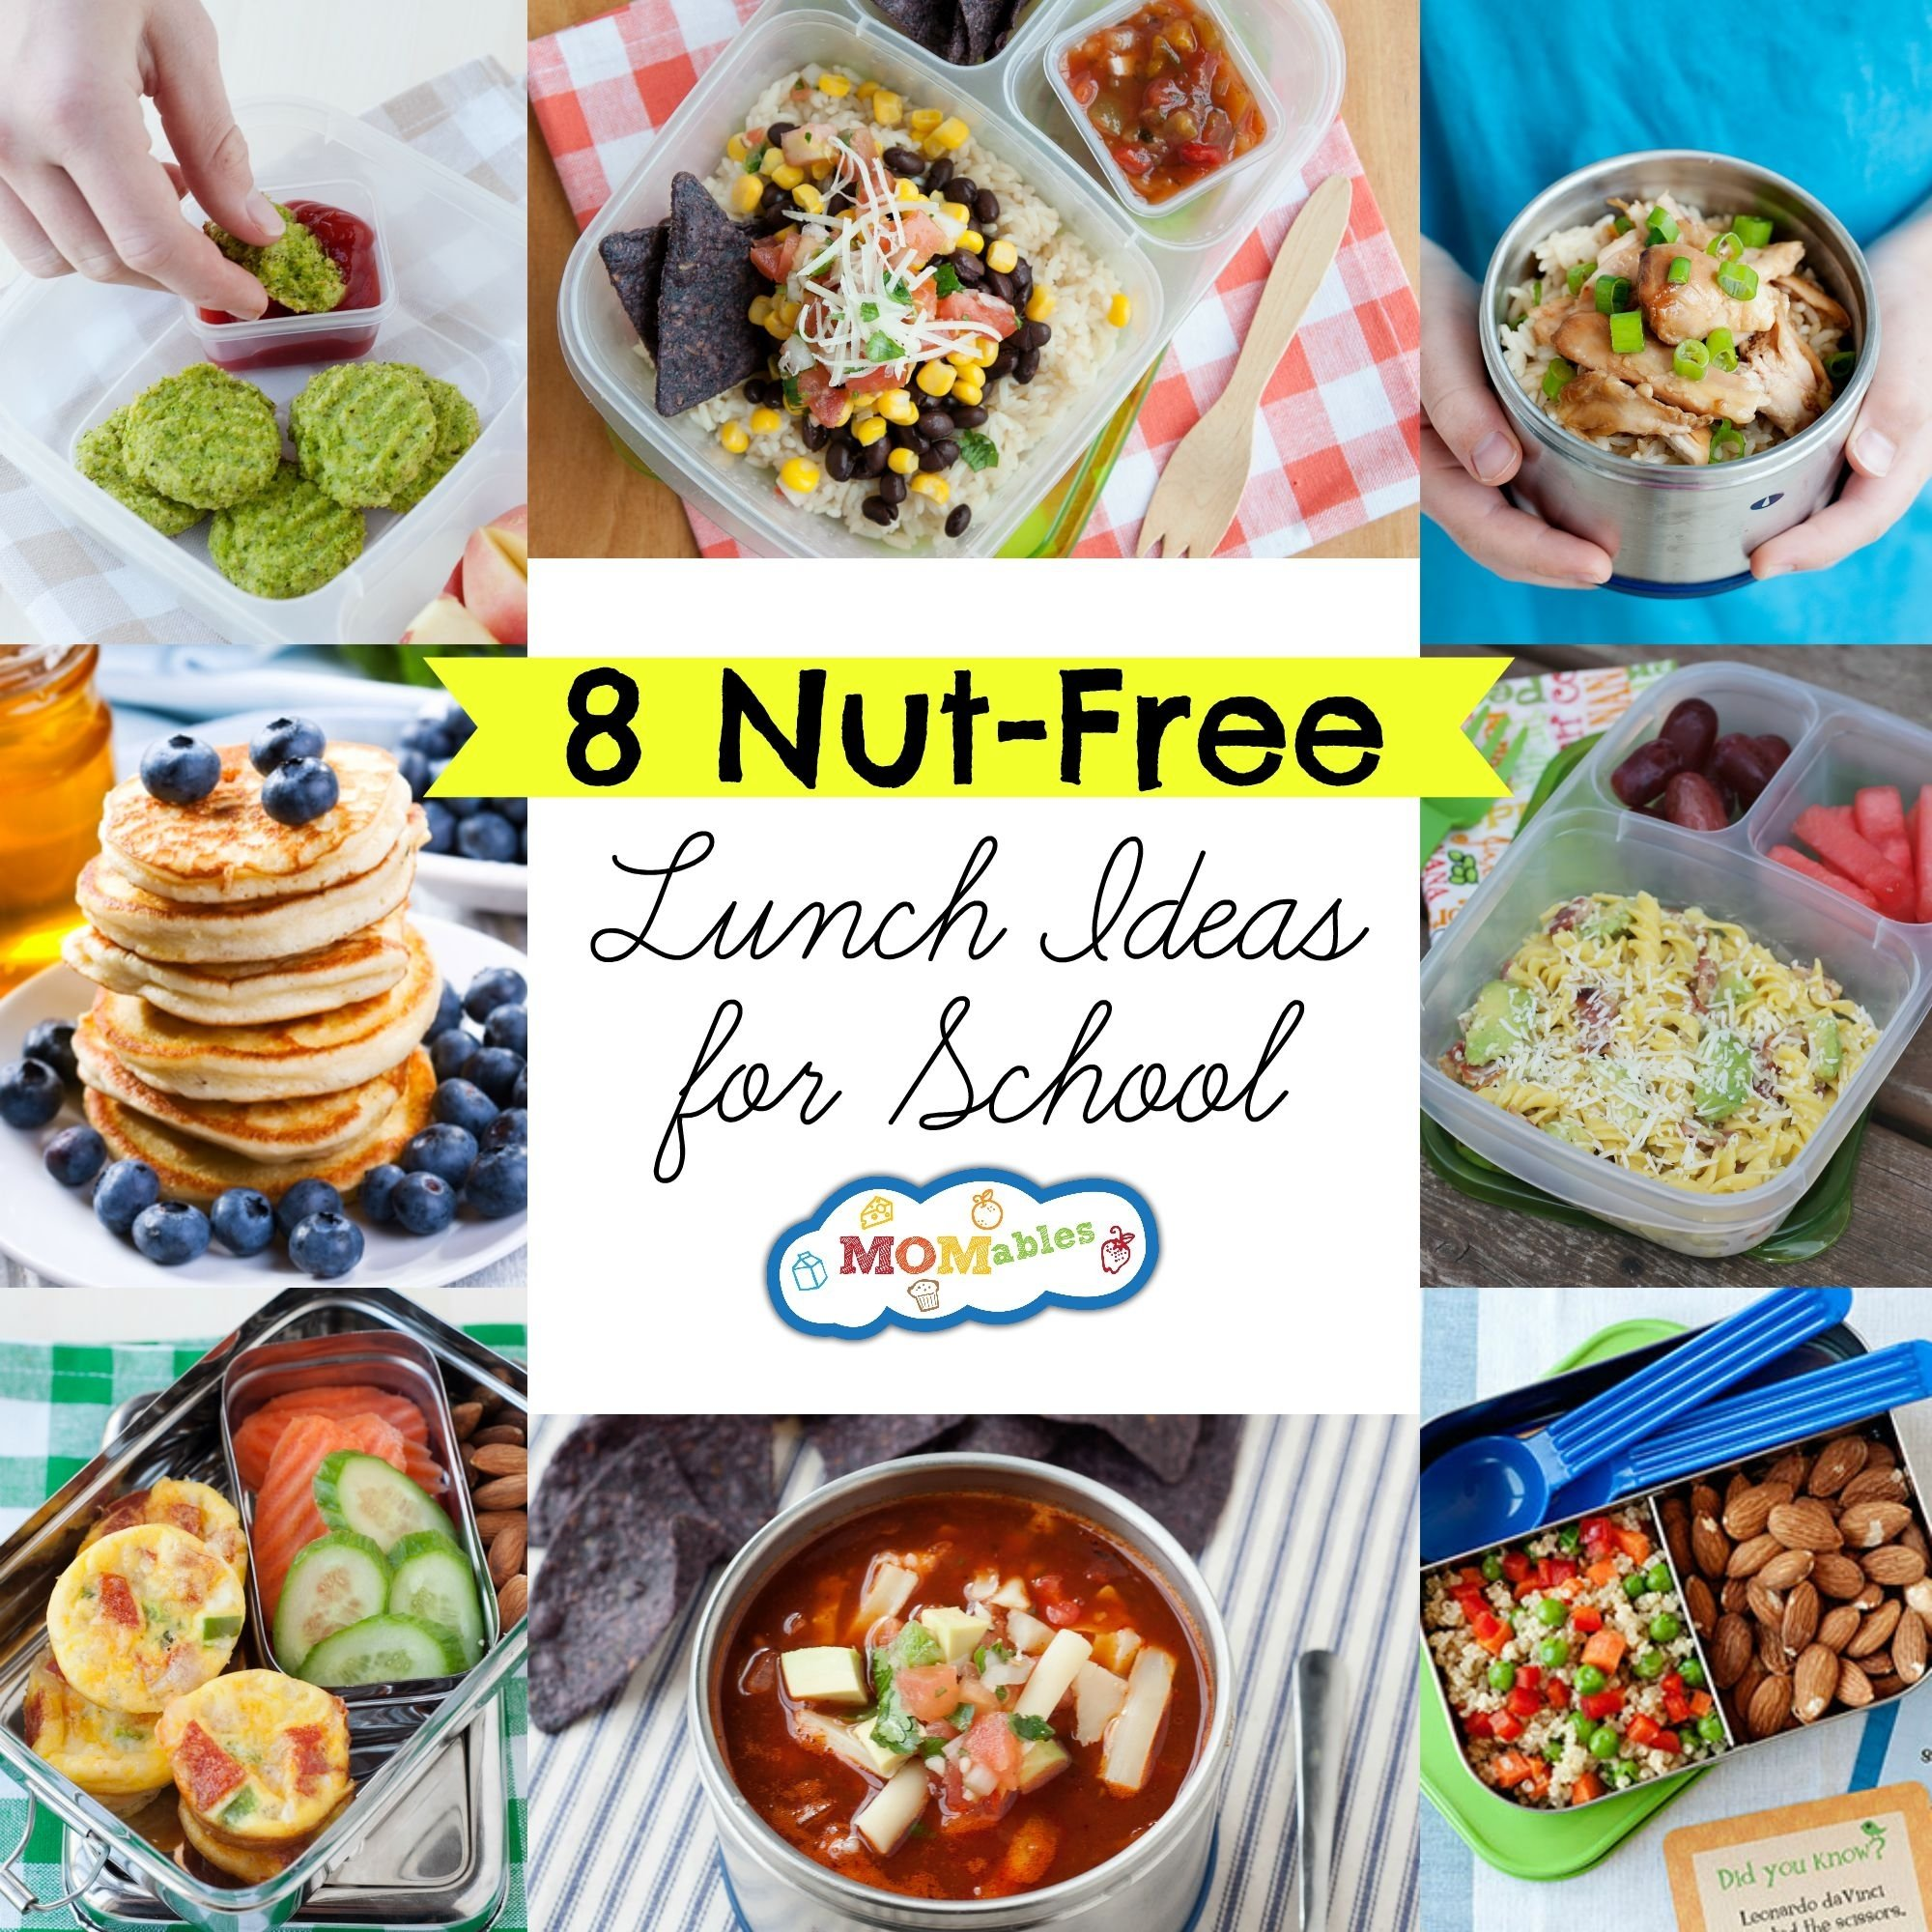 10 Cute Lunch Box Ideas For Picky Eaters 8 nut free lunch ideas for school momables 2